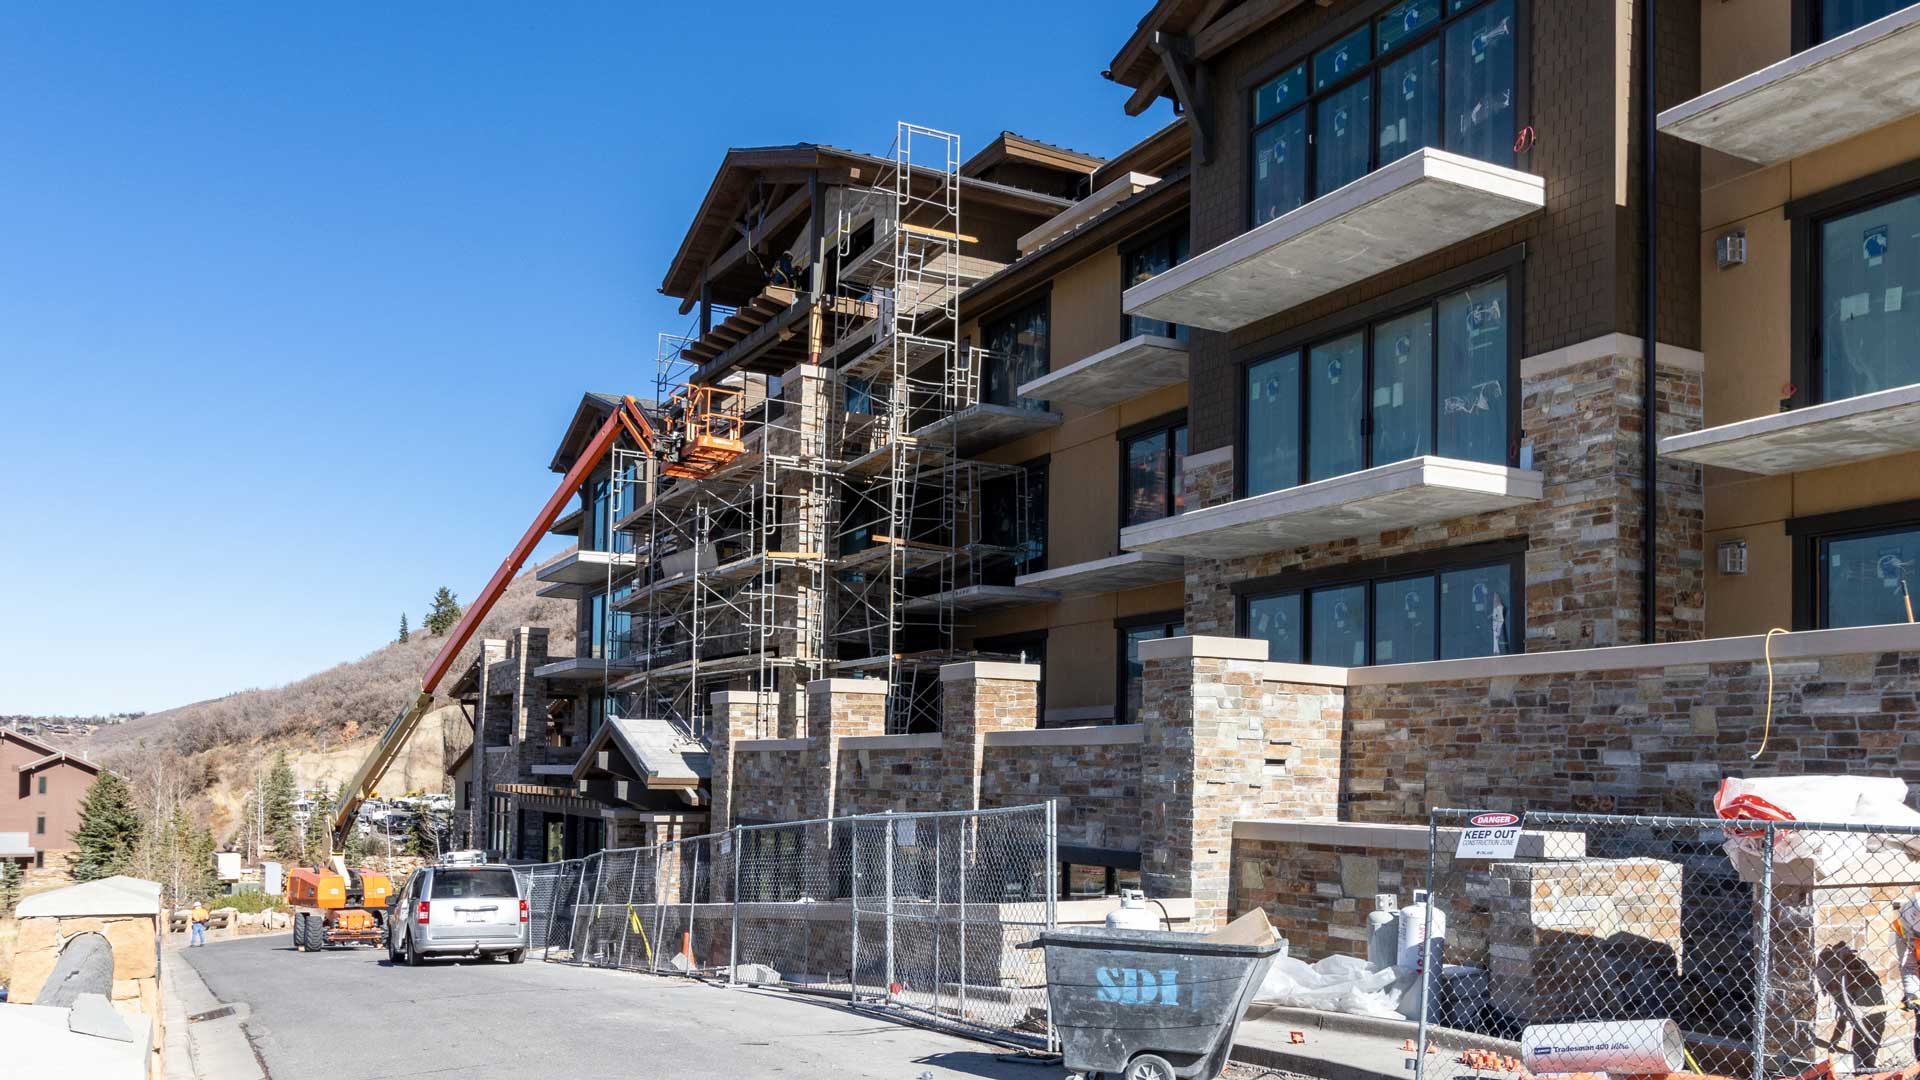 Construction Progress, The Residences at The St. Regis | Snow Park, October 28, 2020